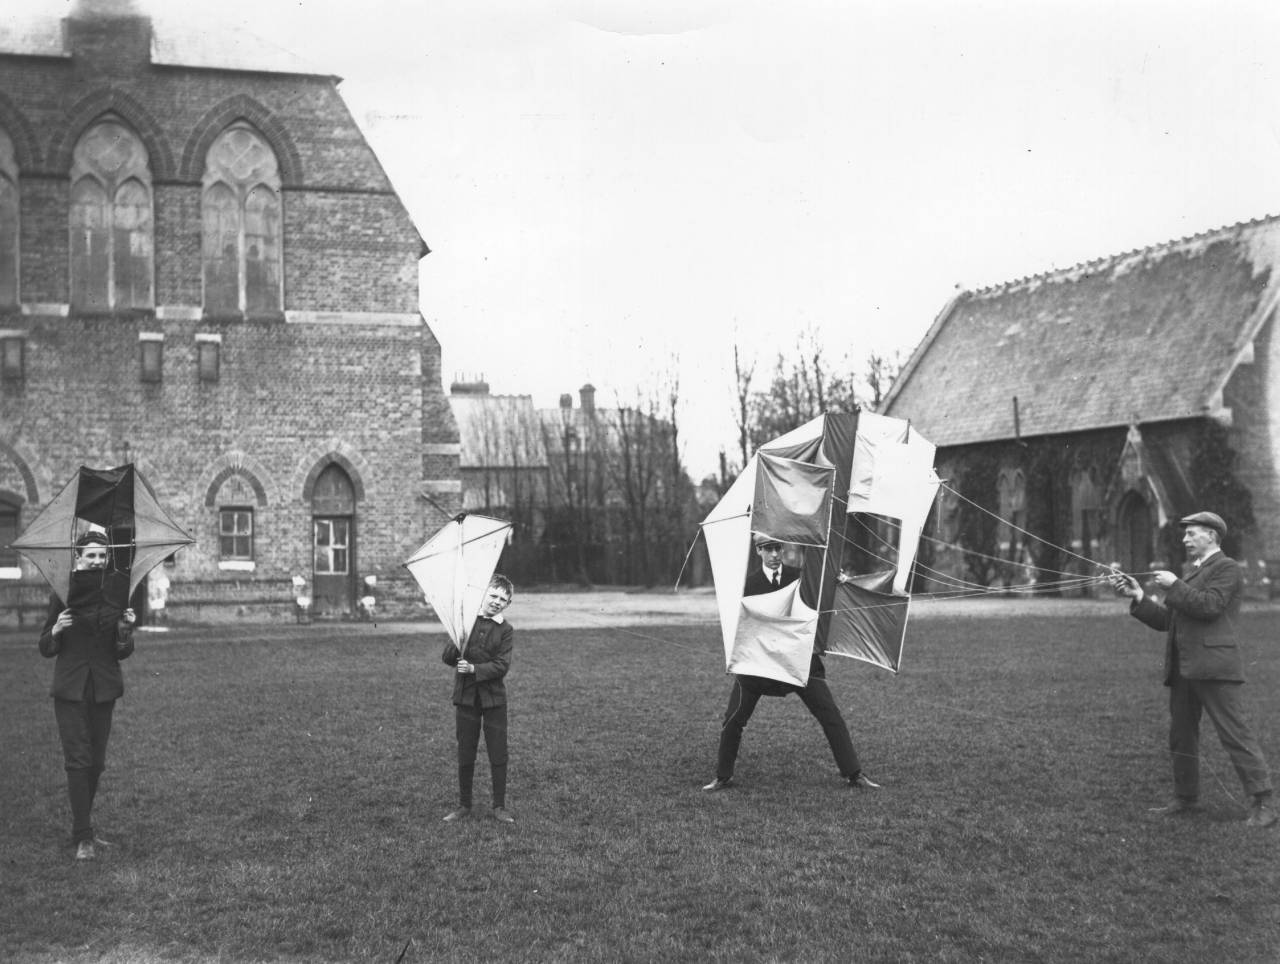 1909: An instruction lesson in kite flying at the United Service College in Windsor.